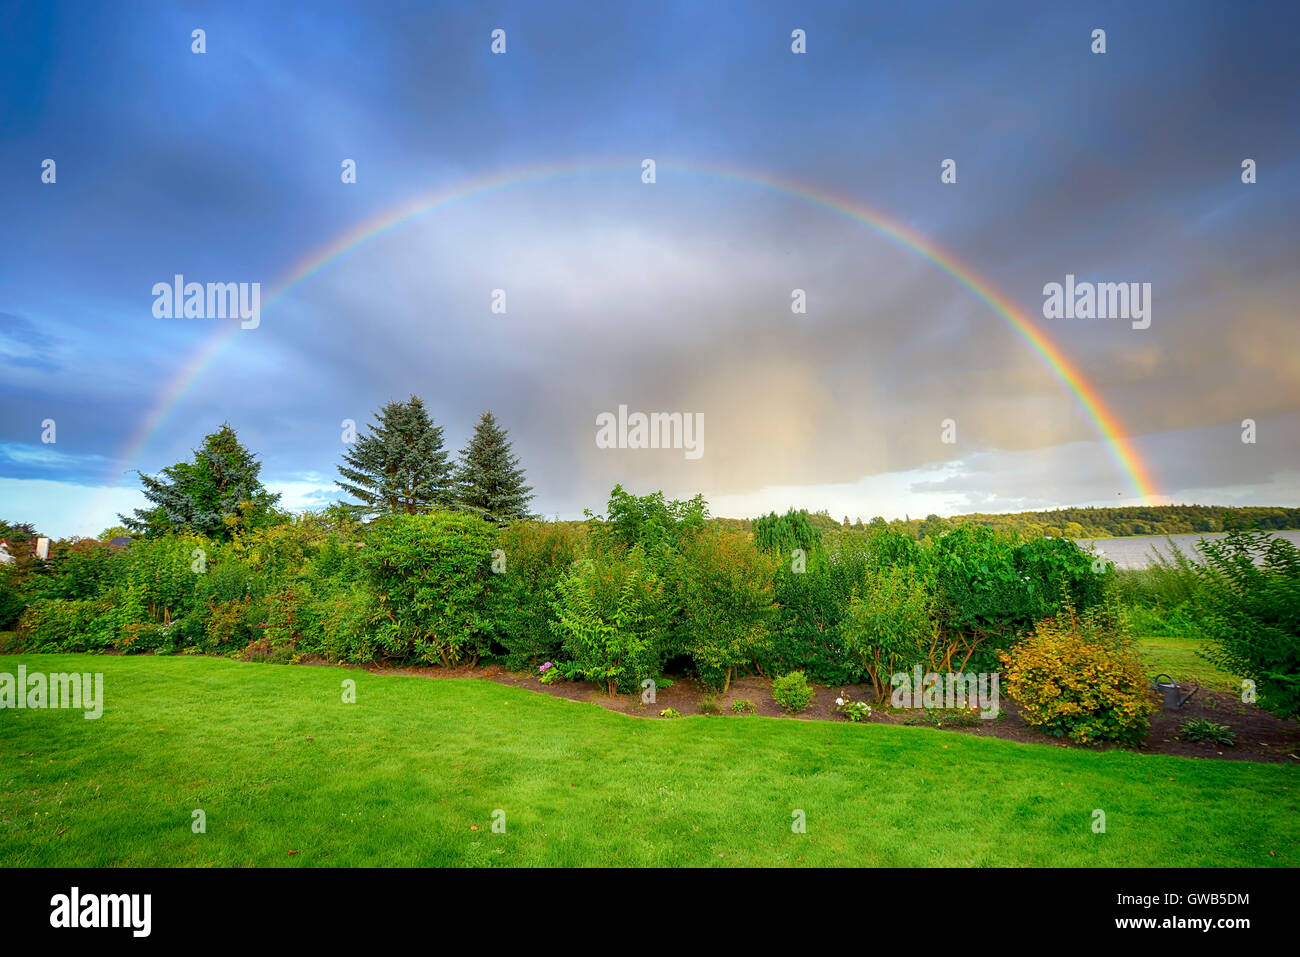 Rainbows about the big Poenitzer lake in Schleswig - Holstein, Germany, Europe, Regenbogen ueber dem Grossen Poenitzer - Stock Image